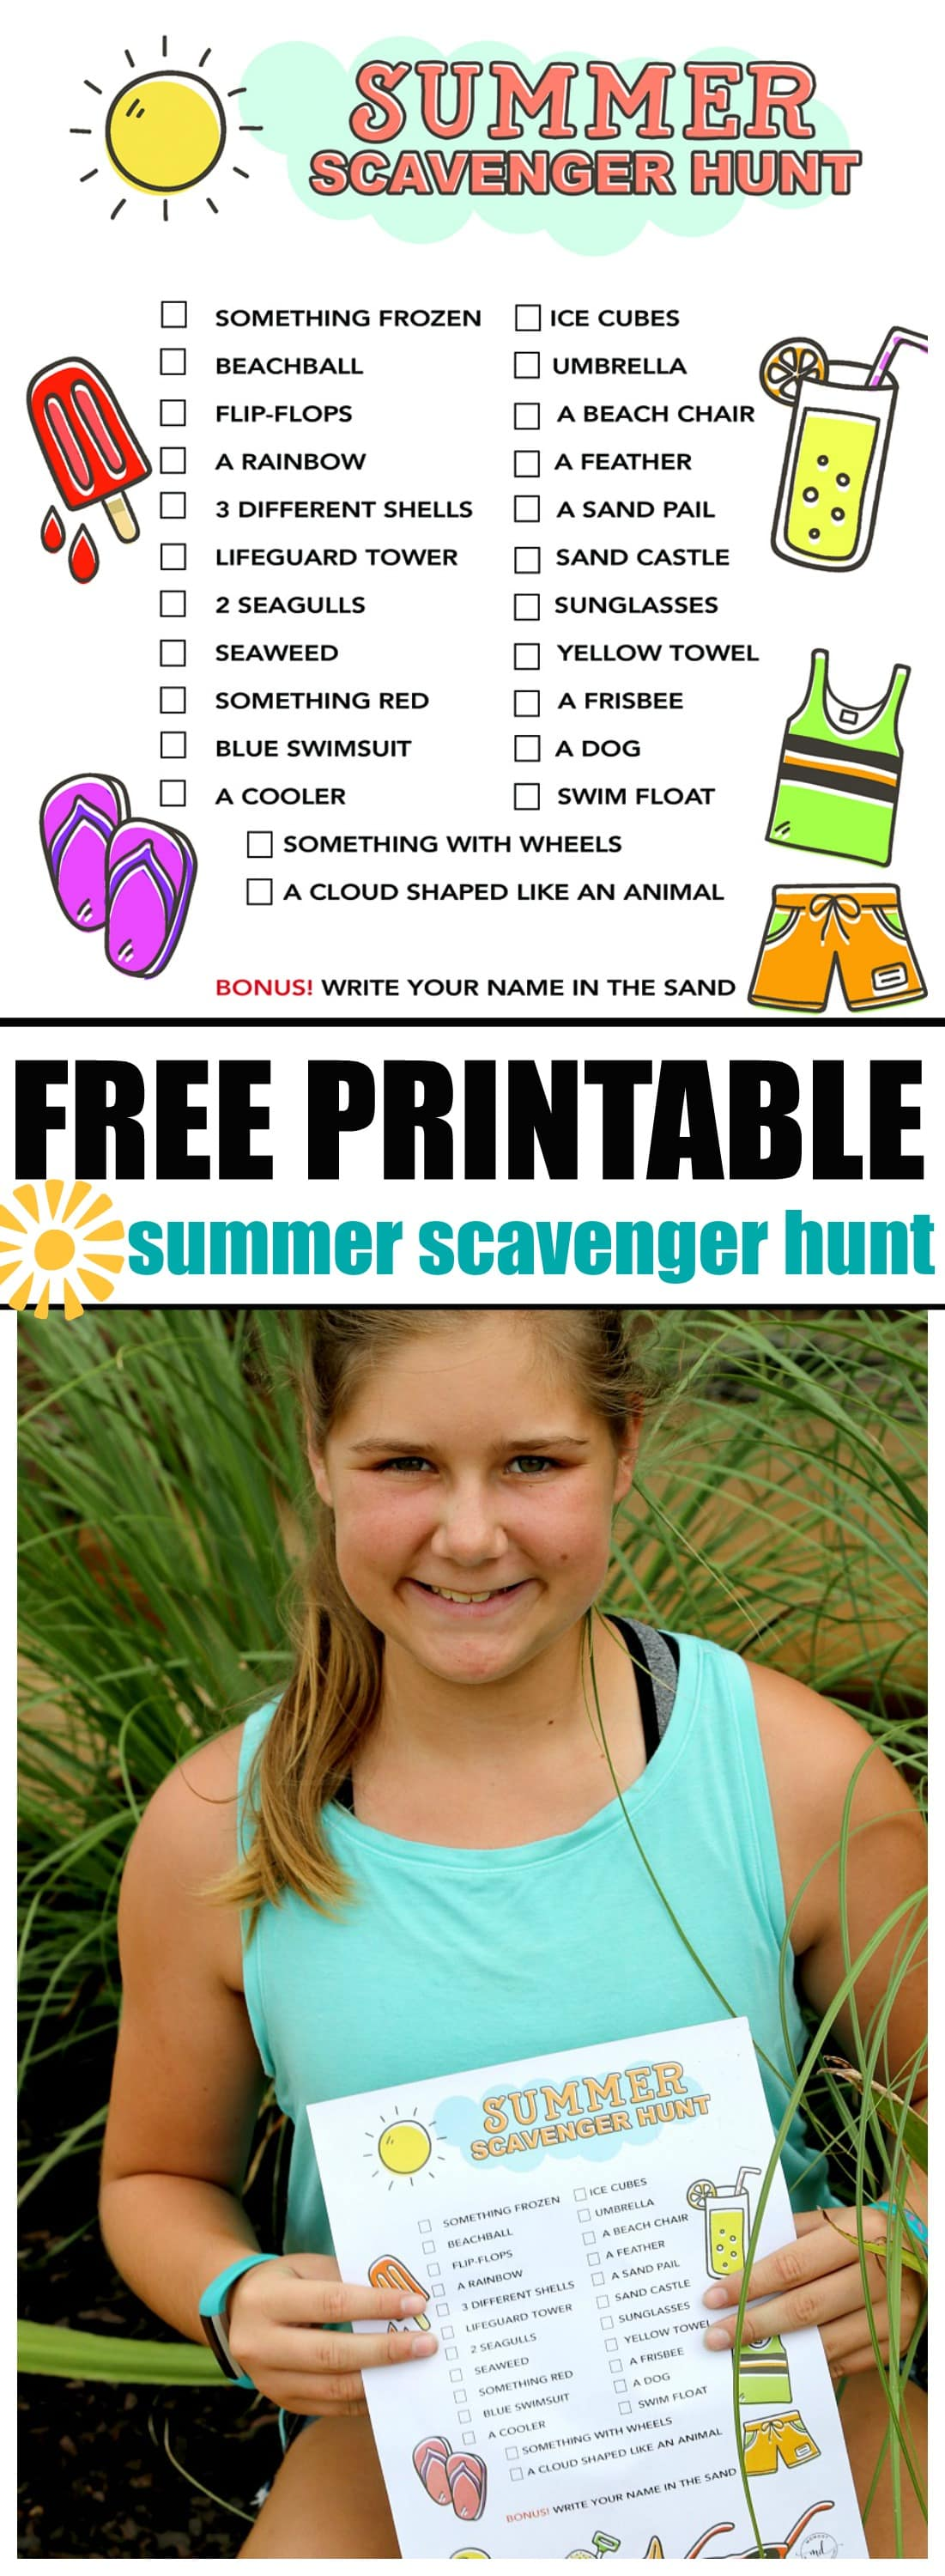 Summer Scavenger Hunt FREE PRINTABLE For kids, Keep kids busy with this free downloadable printable